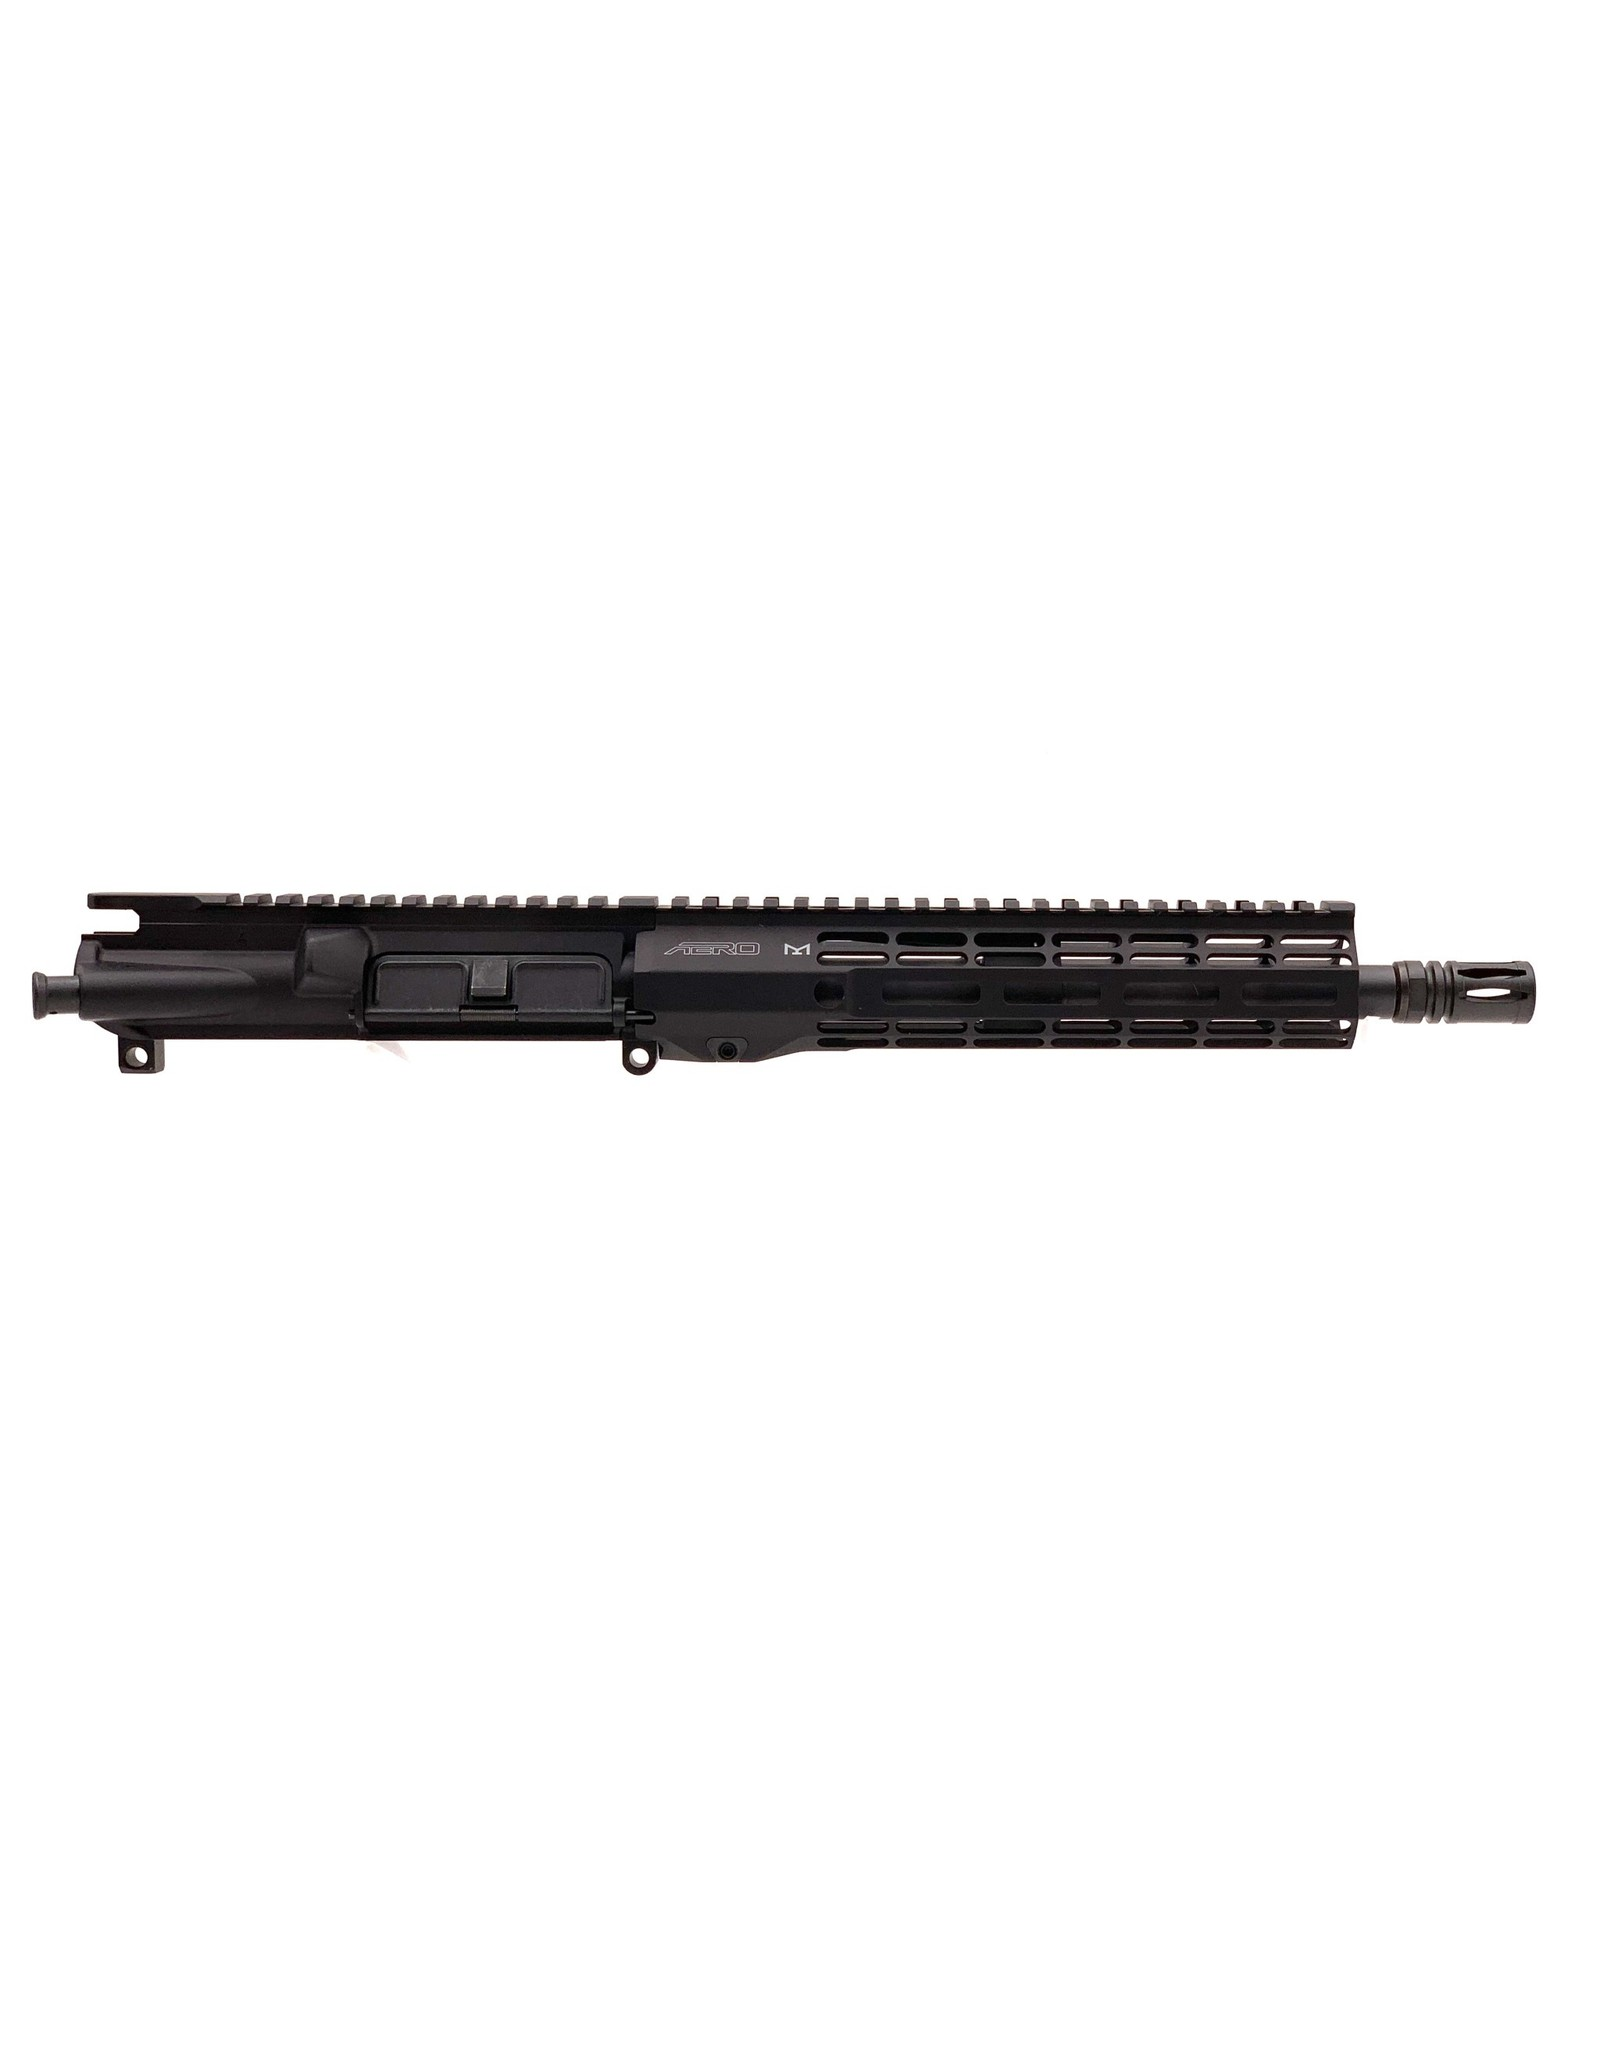 "Sam Diego Tactical 10.5"" 300 BLK Complete Upper - Anodized Black"